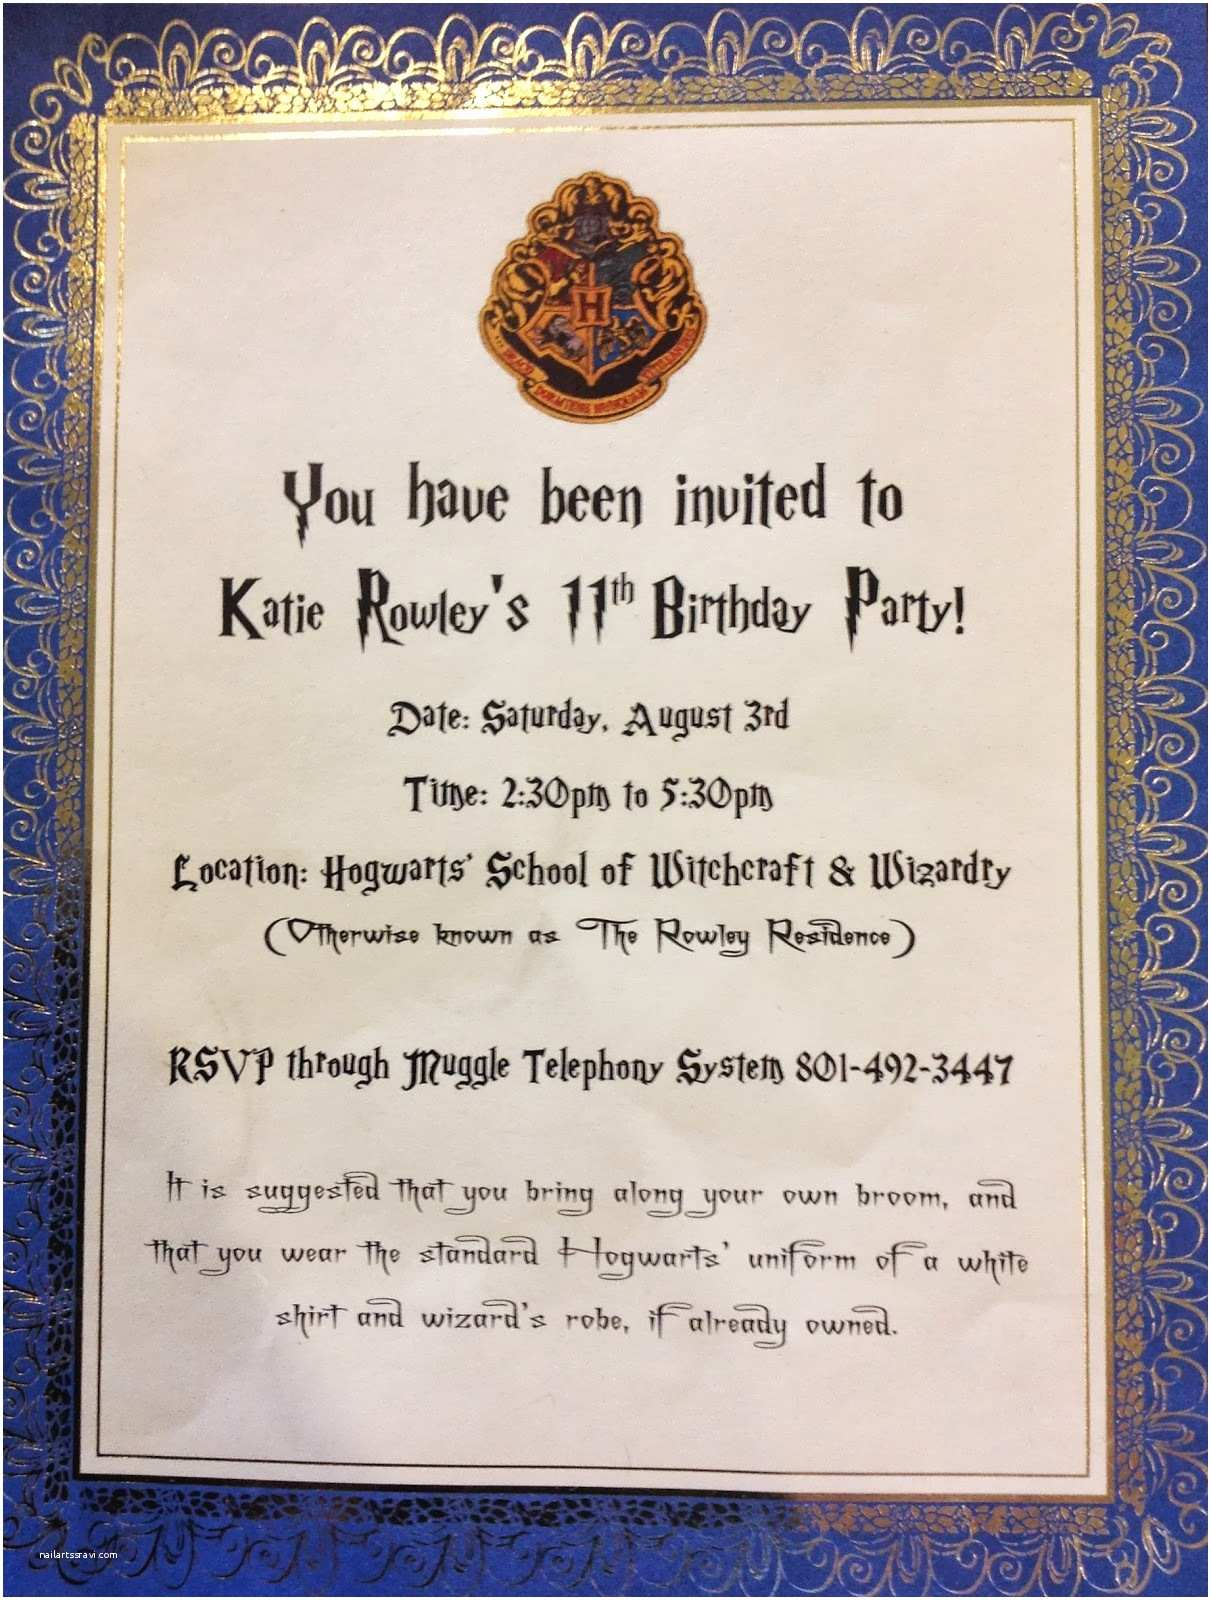 Harry Potter Birthday Party Invitations Puddle Wonderful Learning Harry Potter Birthday Party